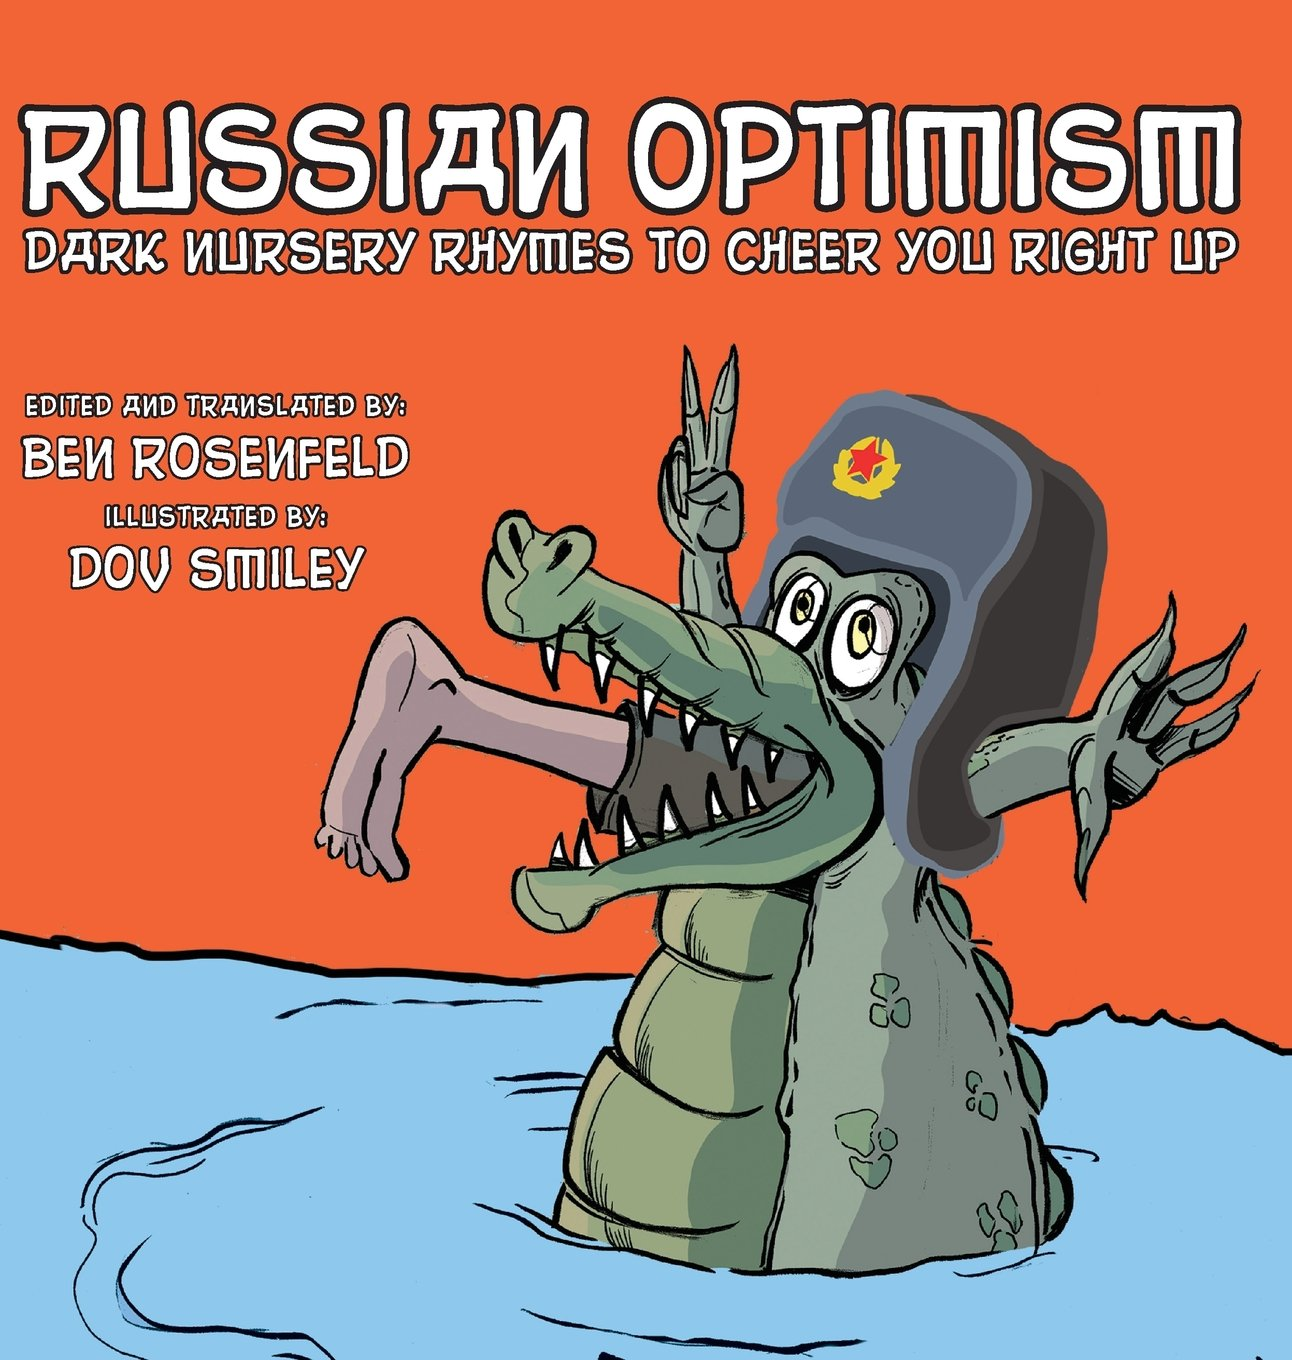 Amazon Com Russian Optimism Dark Nursery Rhymes To Cheer You Right